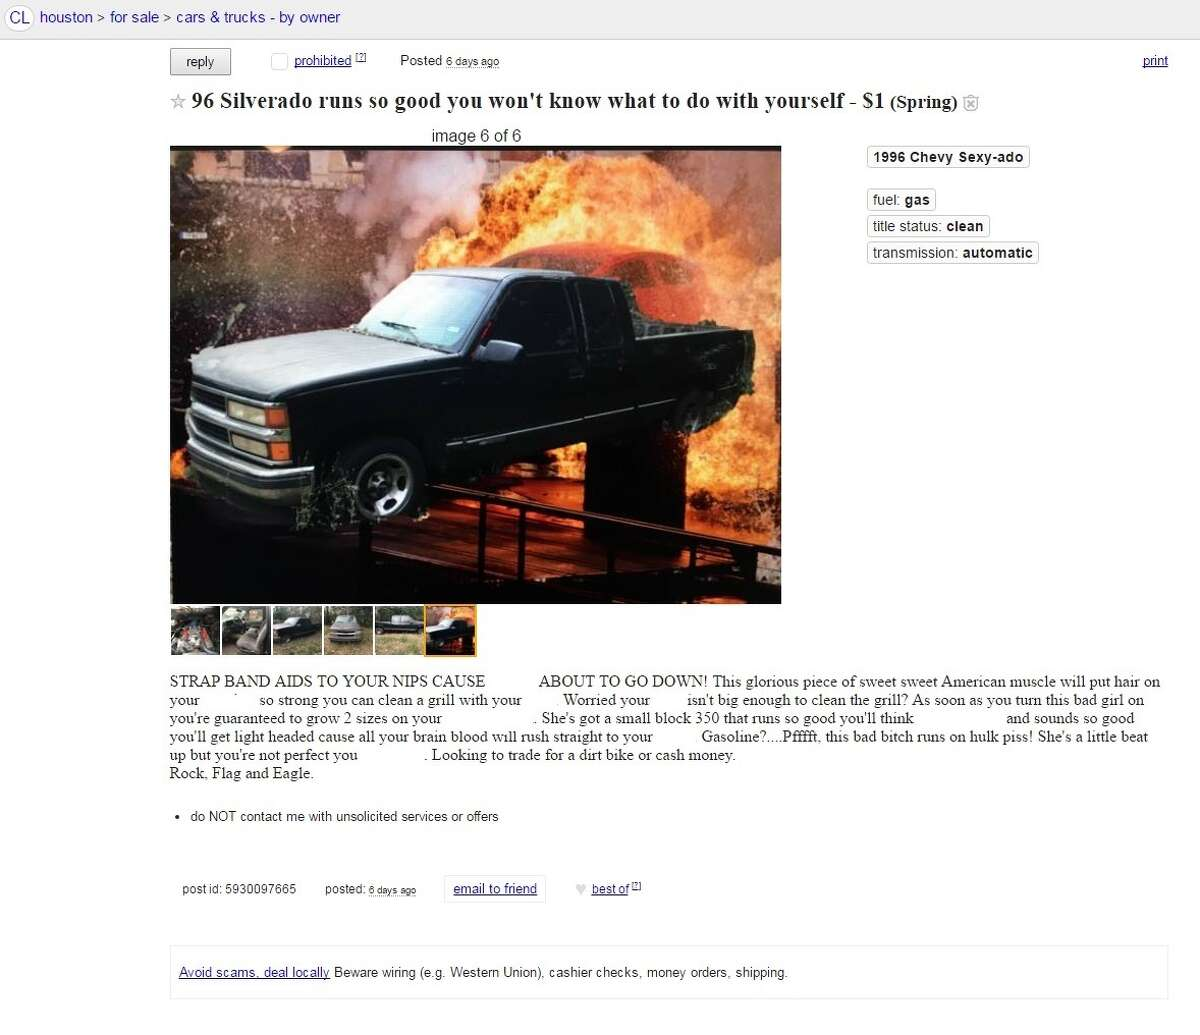 A Craigslist user in Spring has posted a crude ad for a pickup truck, calling it a